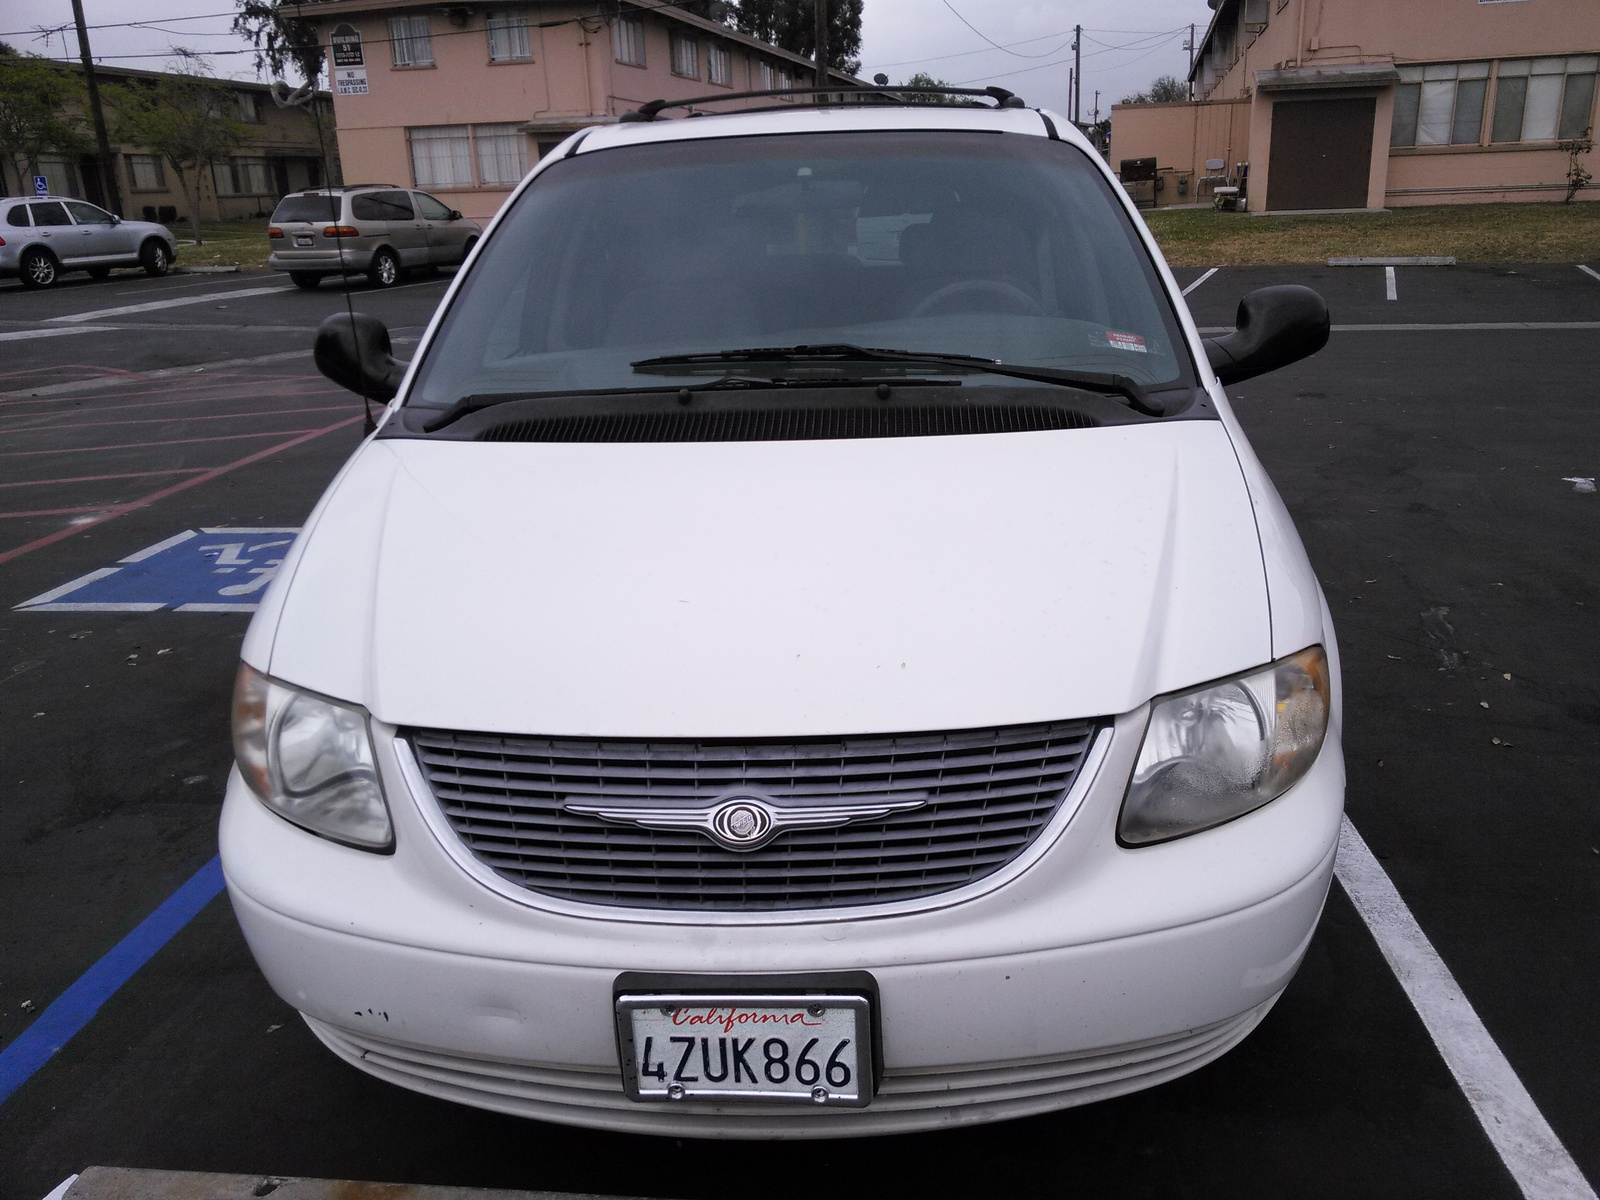 2002 chrysler ramp van keywords suggestions